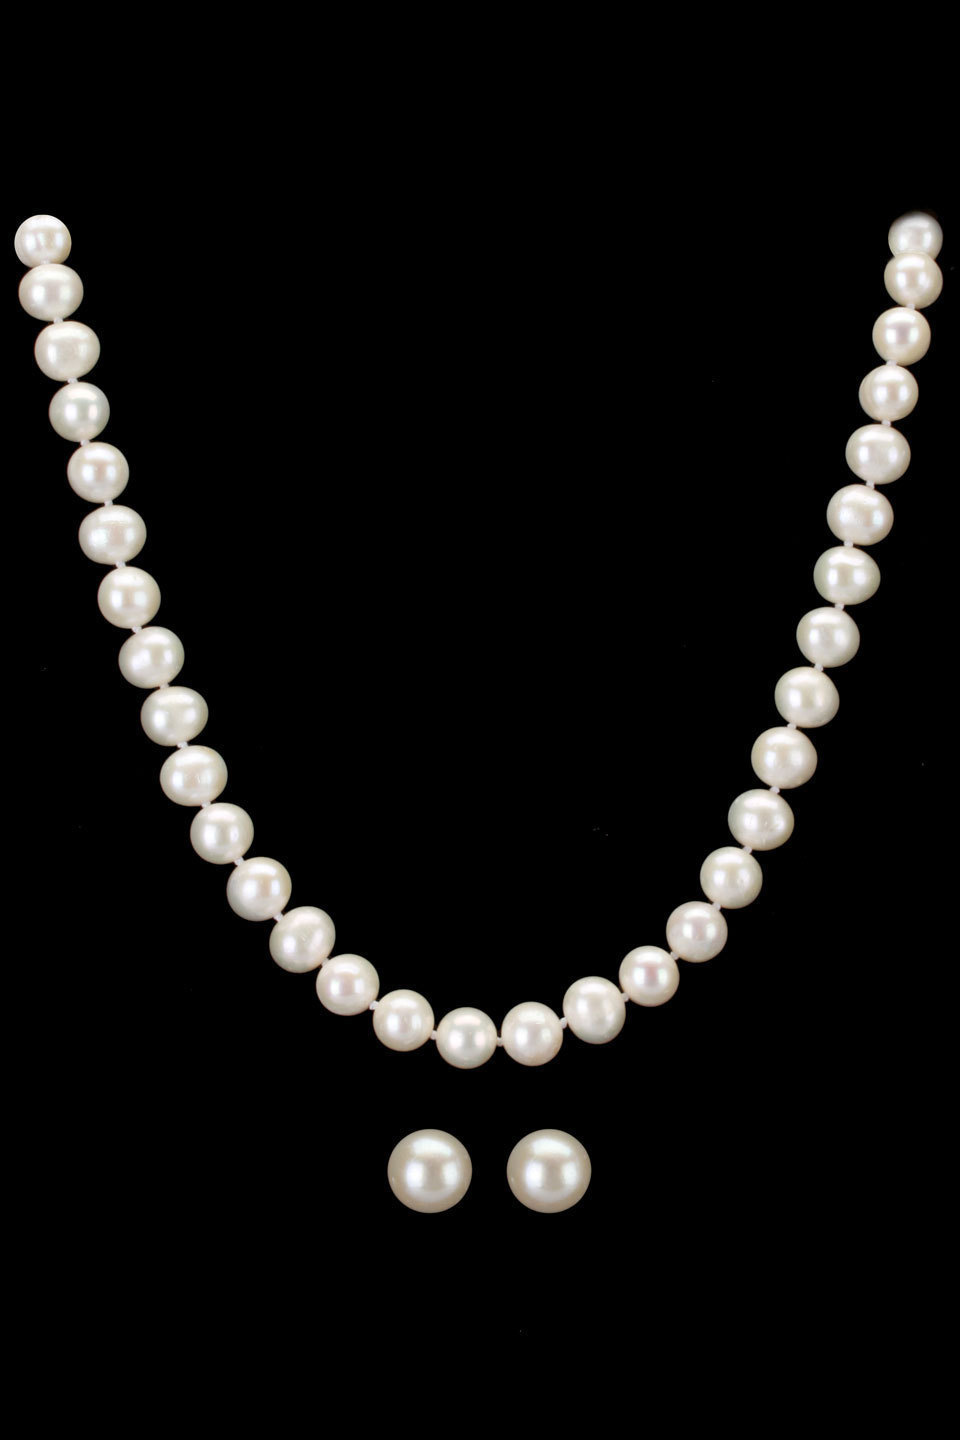 960x1440 Classic Freshwater Pearl Necklace Amp Earrings In White. I Would